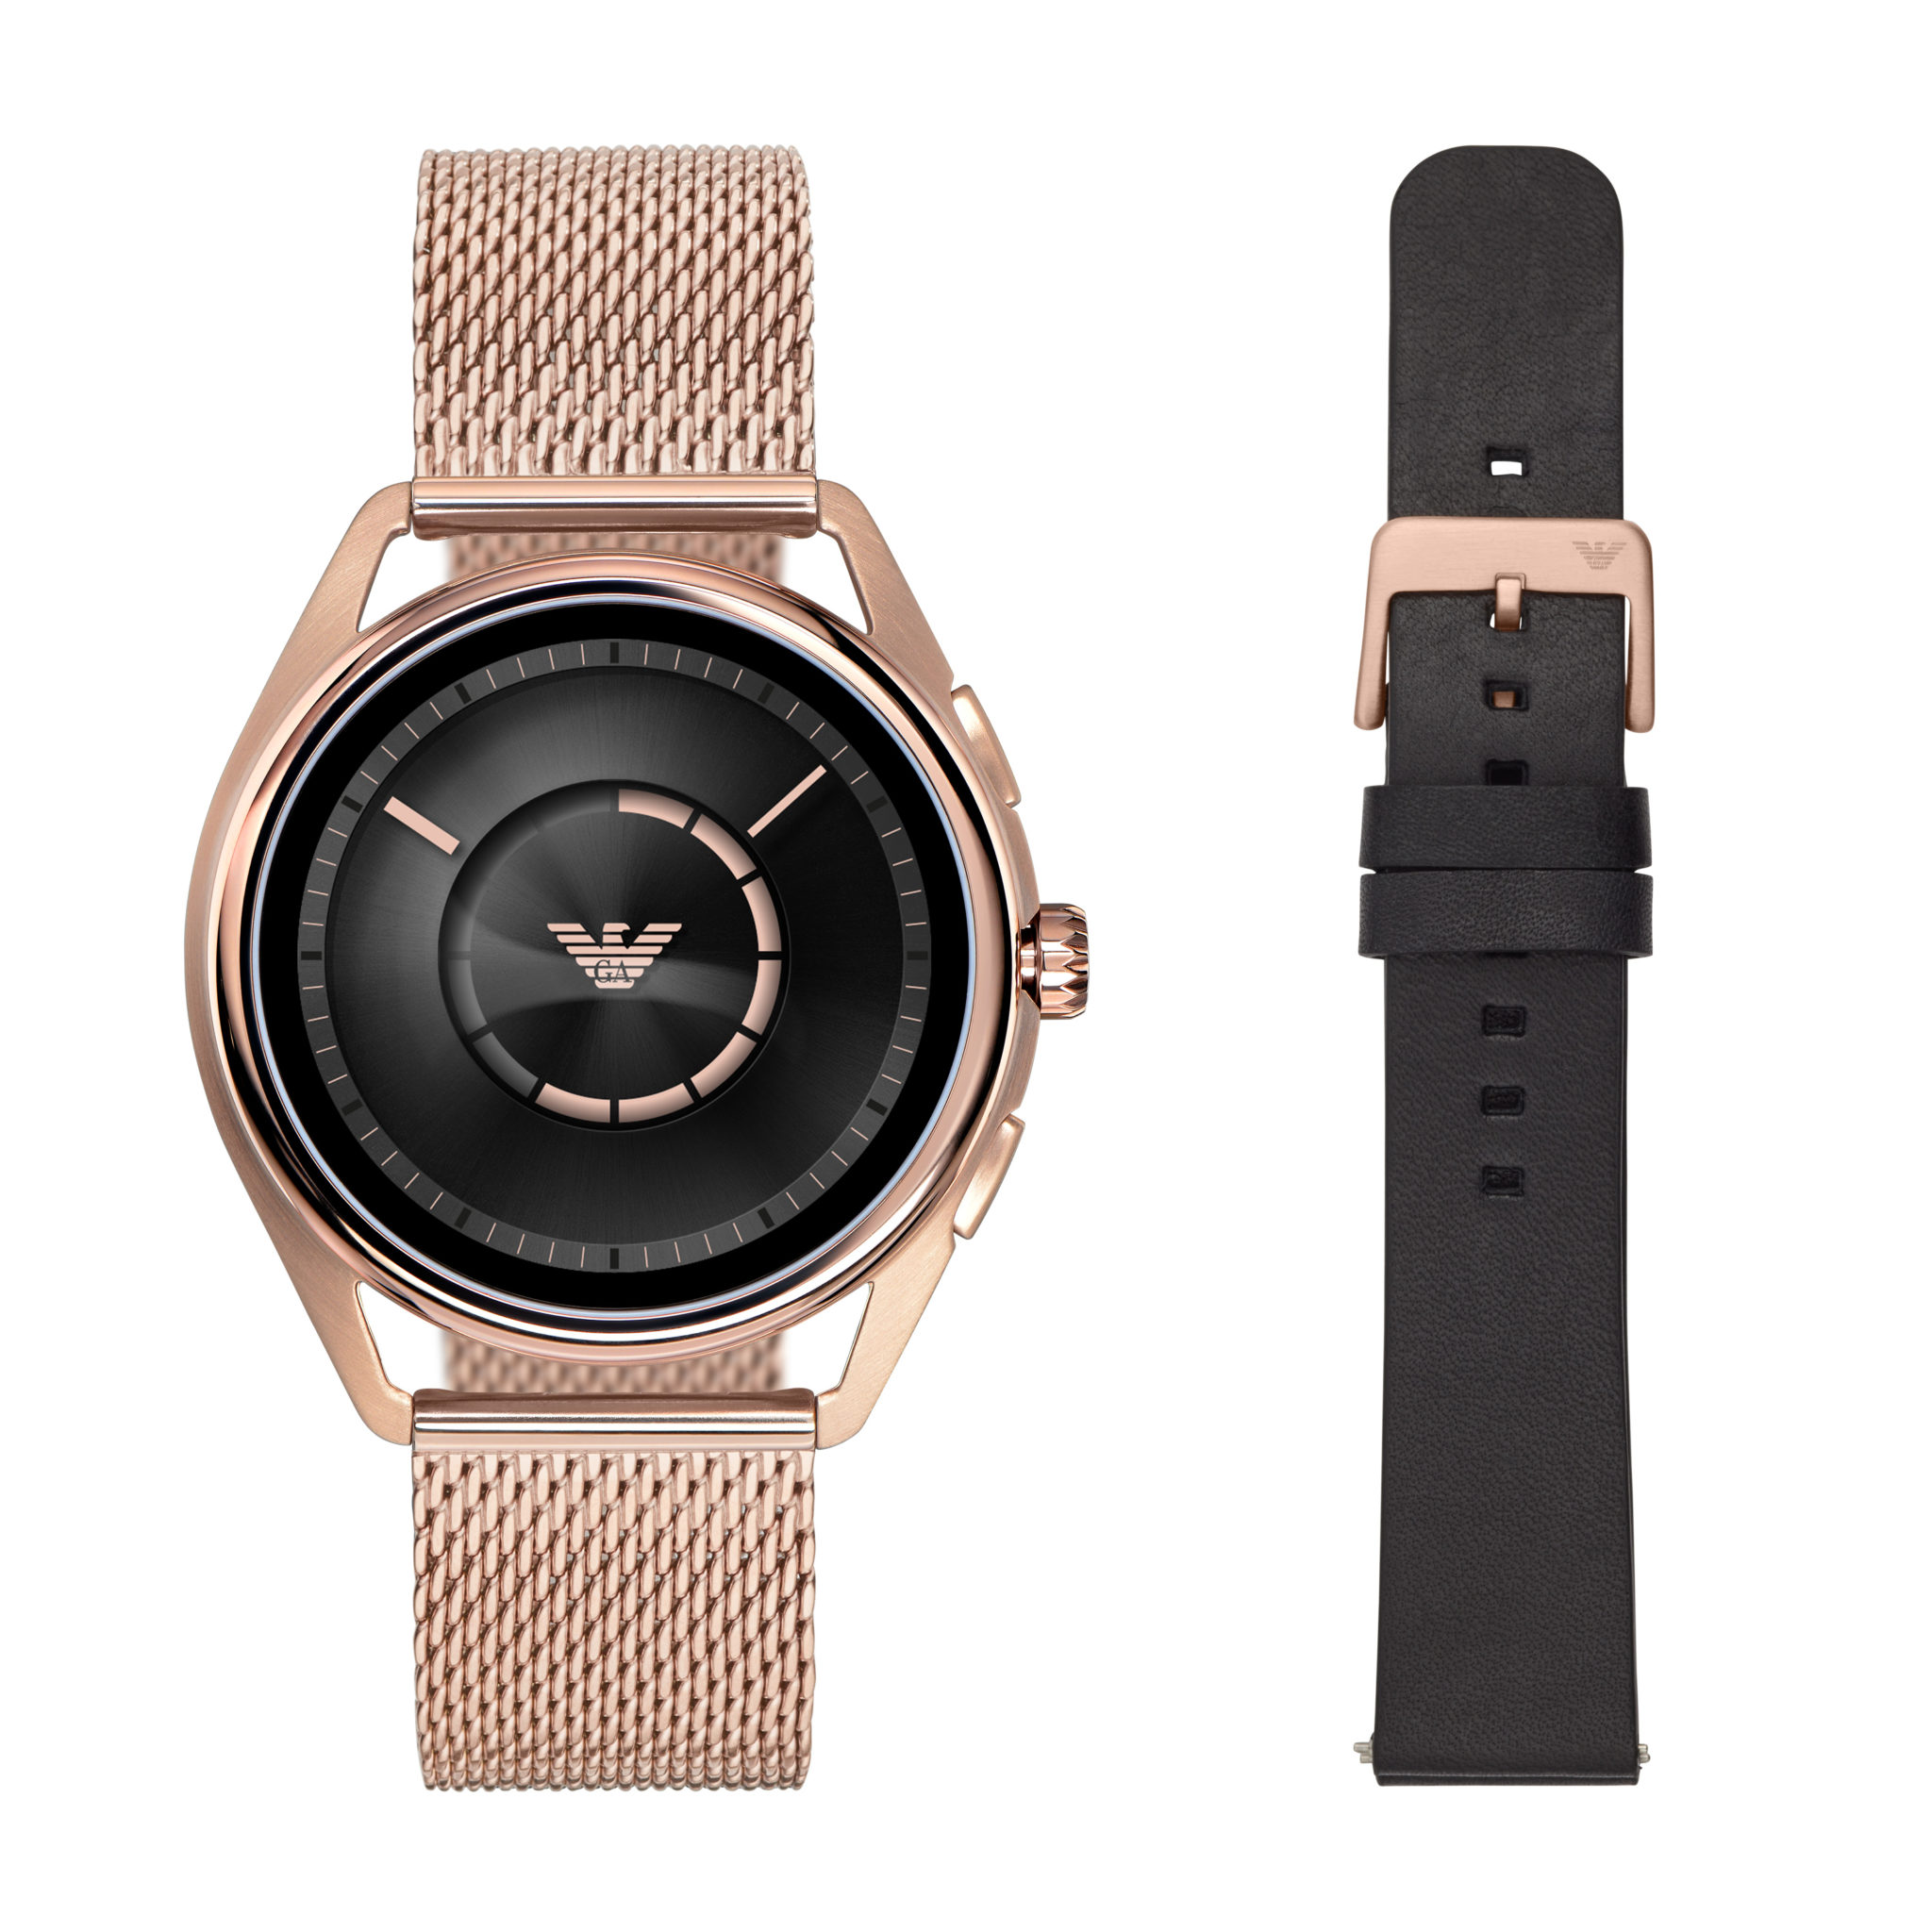 93e861c0b64e2 An in-built NFC-based payment system will work with contactless systems in  UK retailers. The watches are also fitted with Google Assistant